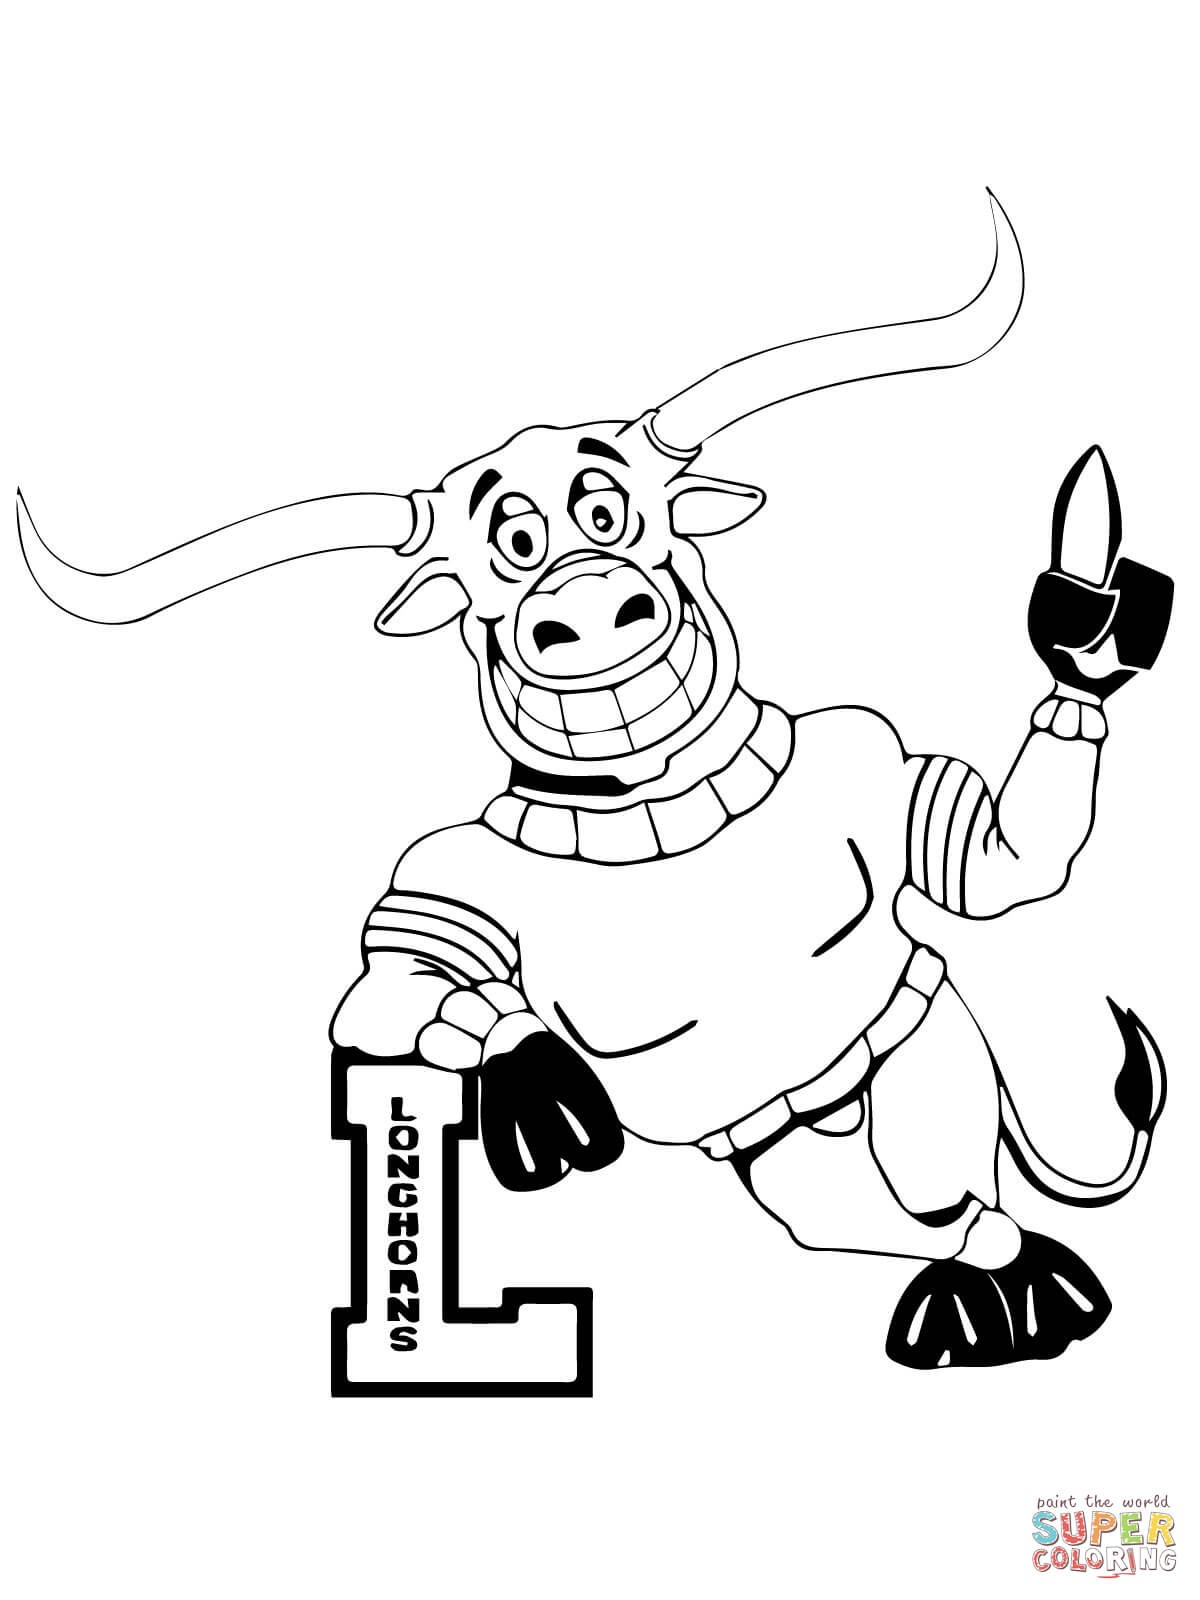 texas longhorns coloring pages texas longhorn coloring page booth western art museum texas pages longhorns coloring